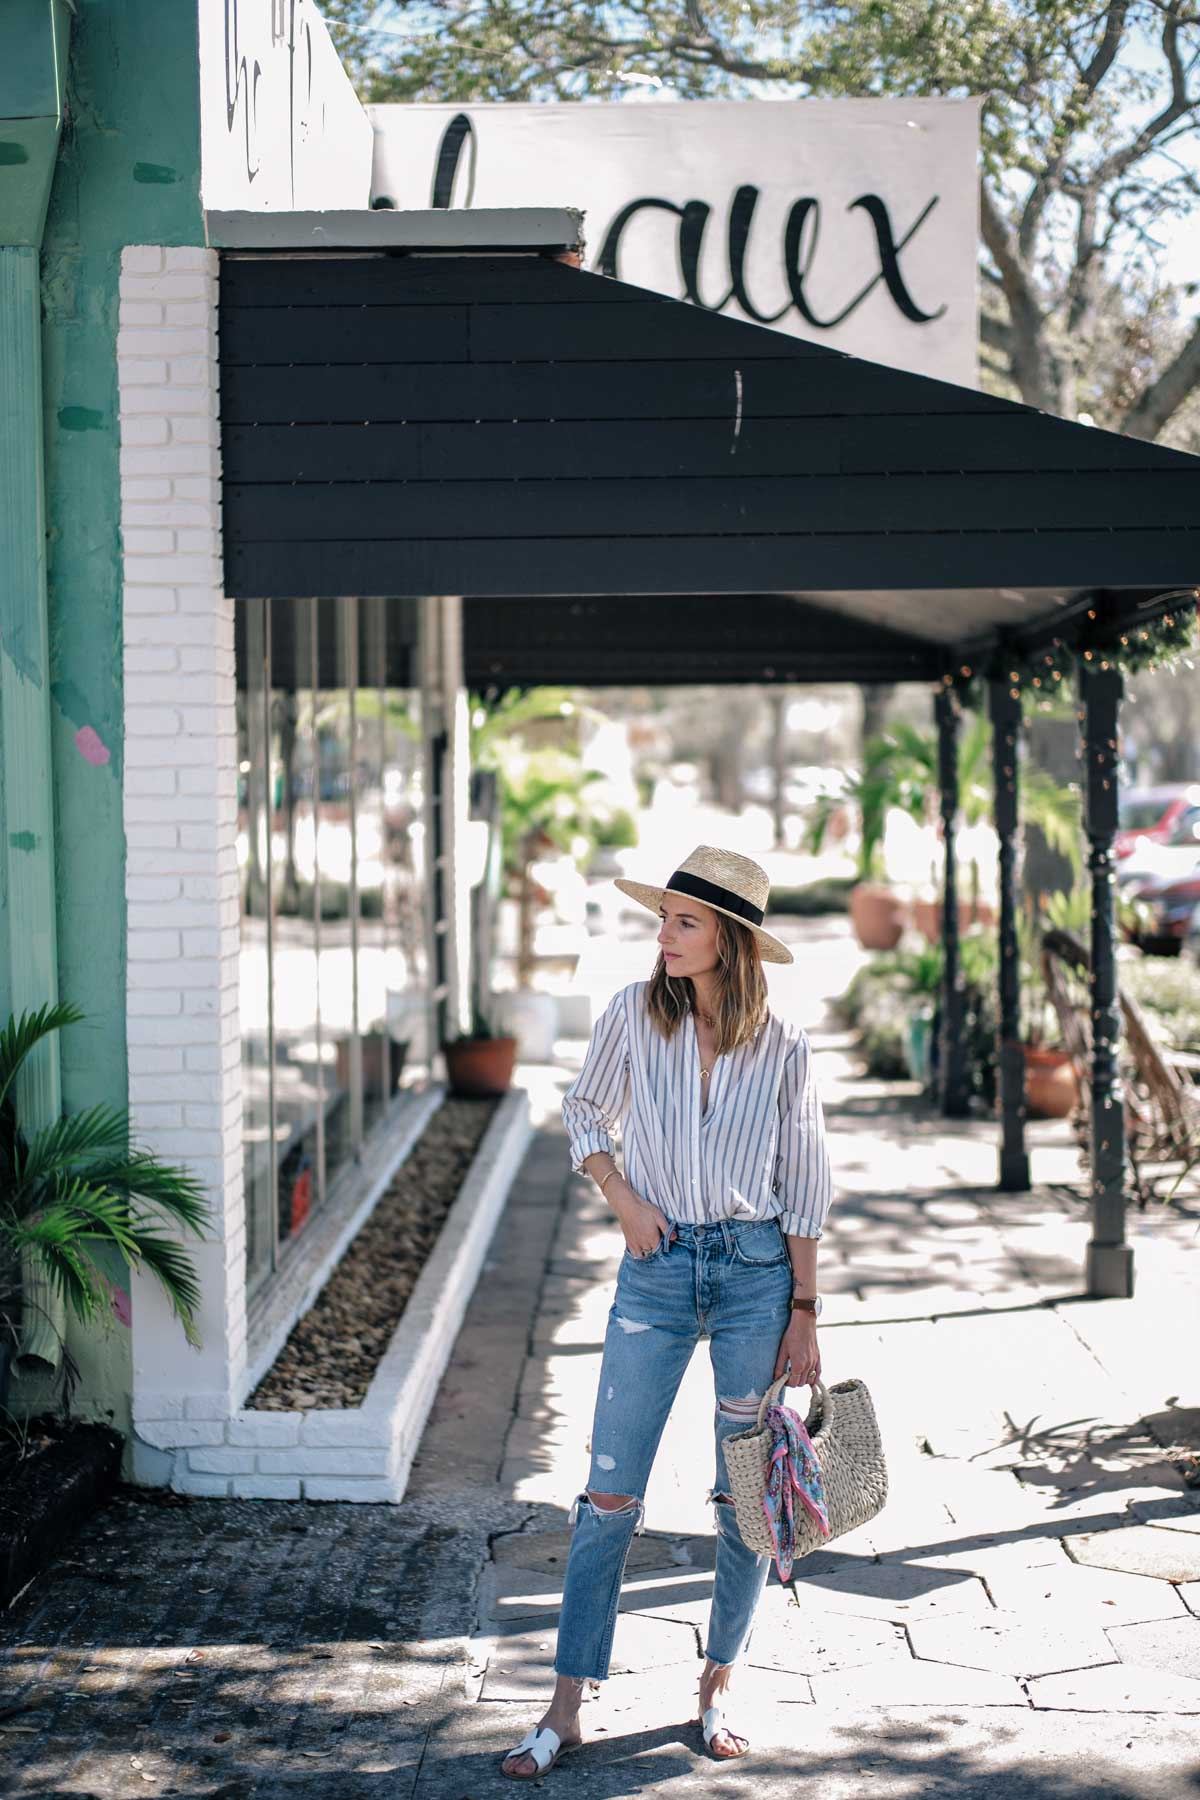 Jess Ann Kirby styles a striped button down with ripped jeans and a straw tote